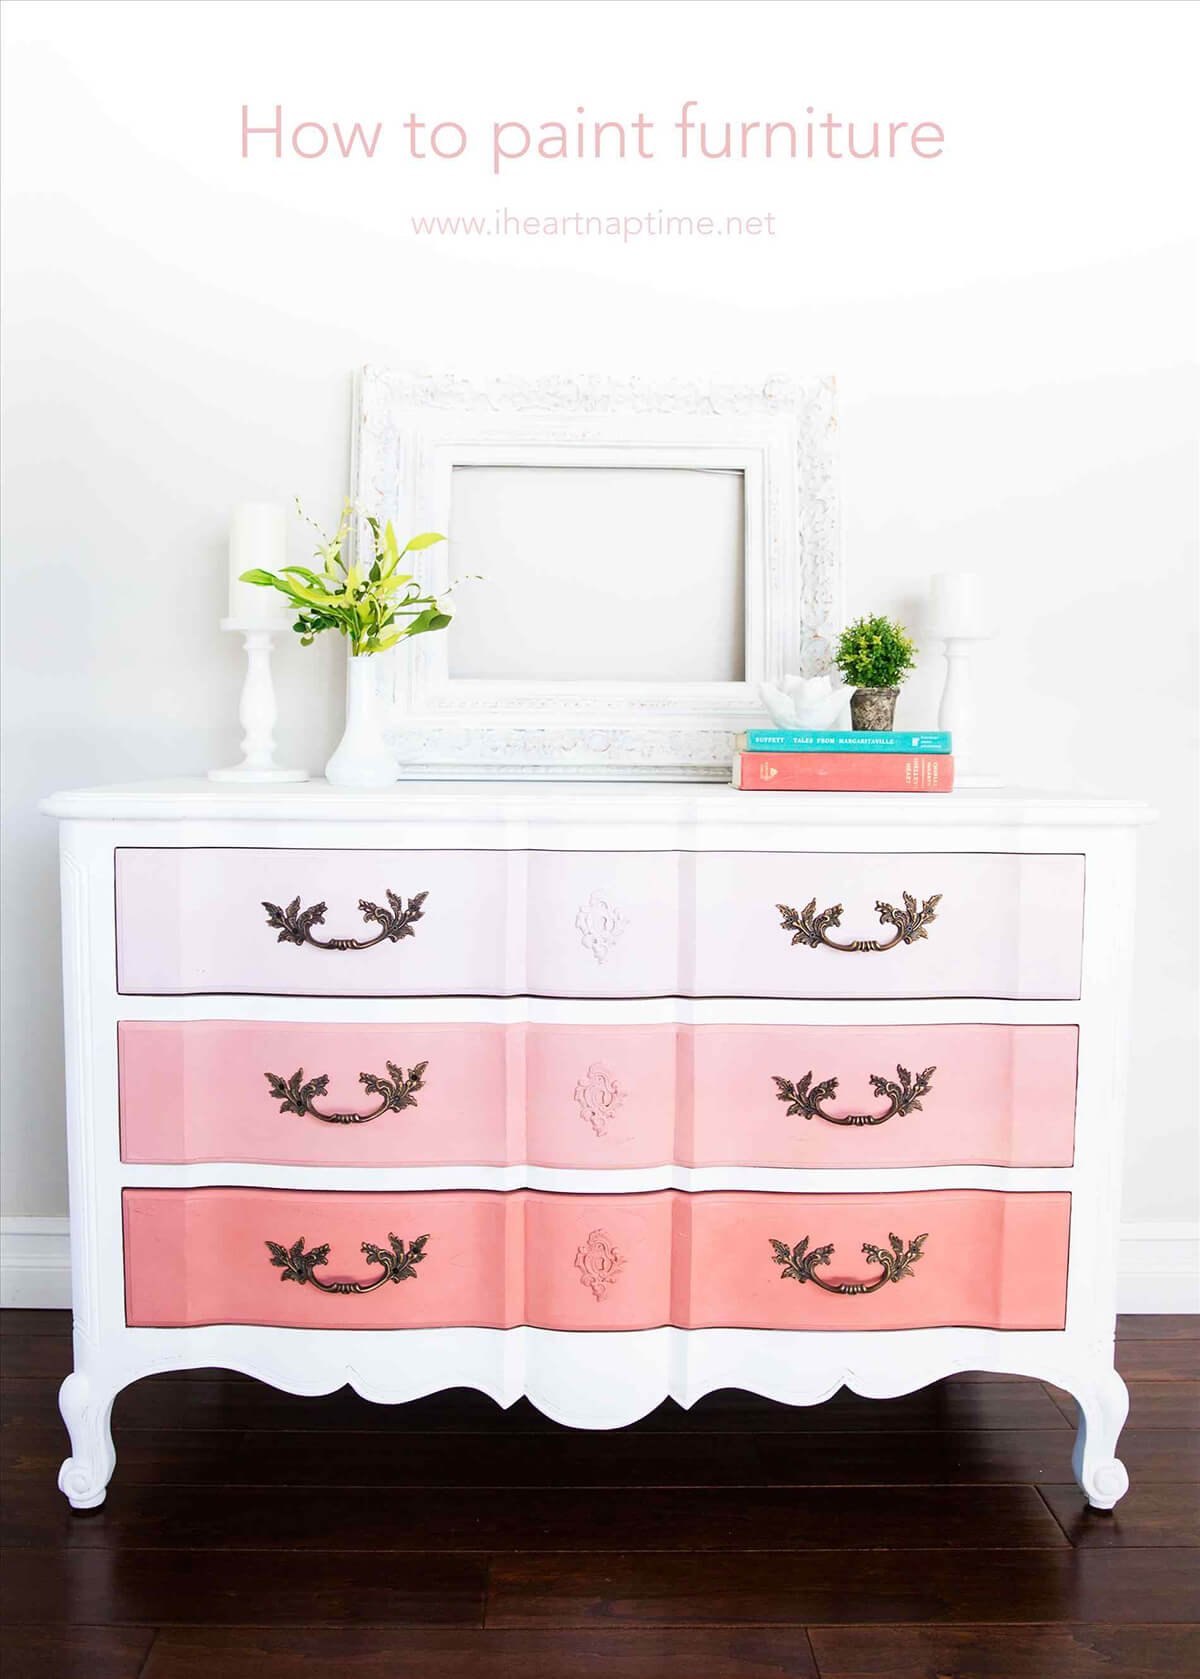 28 Best Furniture Painting Ideas And Designs For 2019